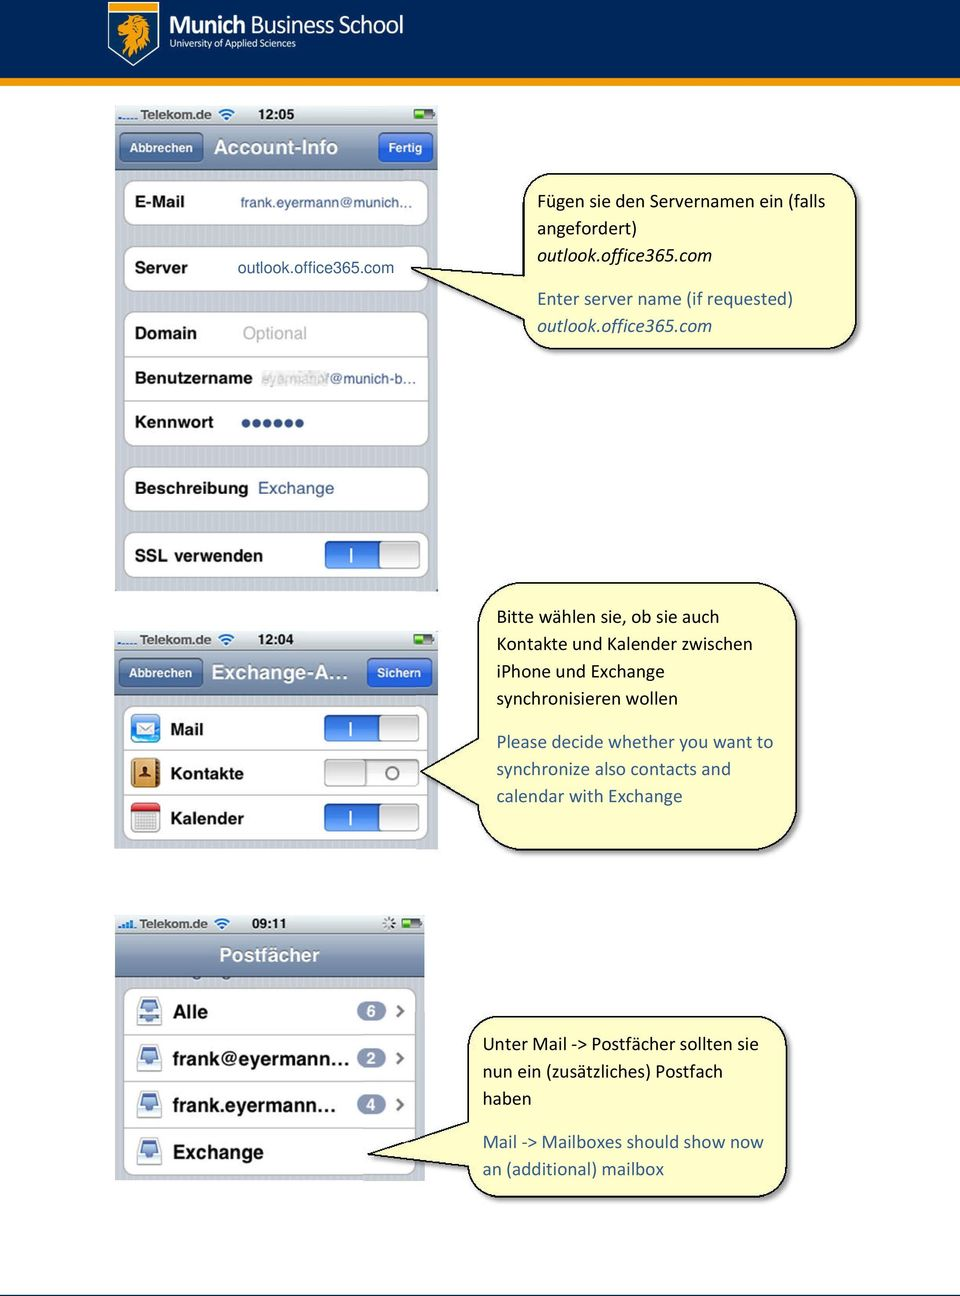 whether you want to synchronize also contacts and calendar with Exchange Unter Mail -> Postfächer